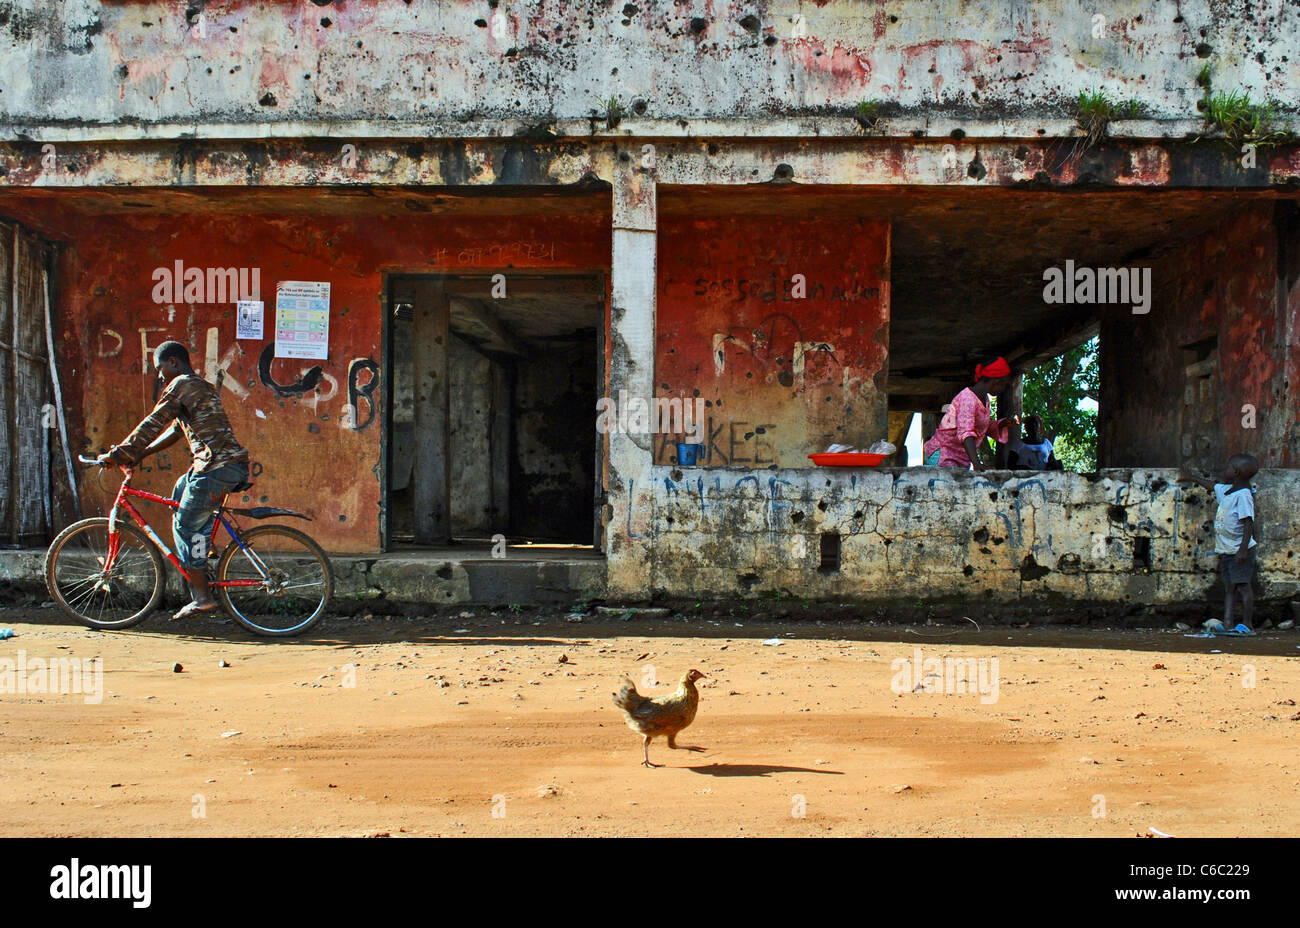 Bullet holes in a house in Zorzor, Liberia - Stock Image